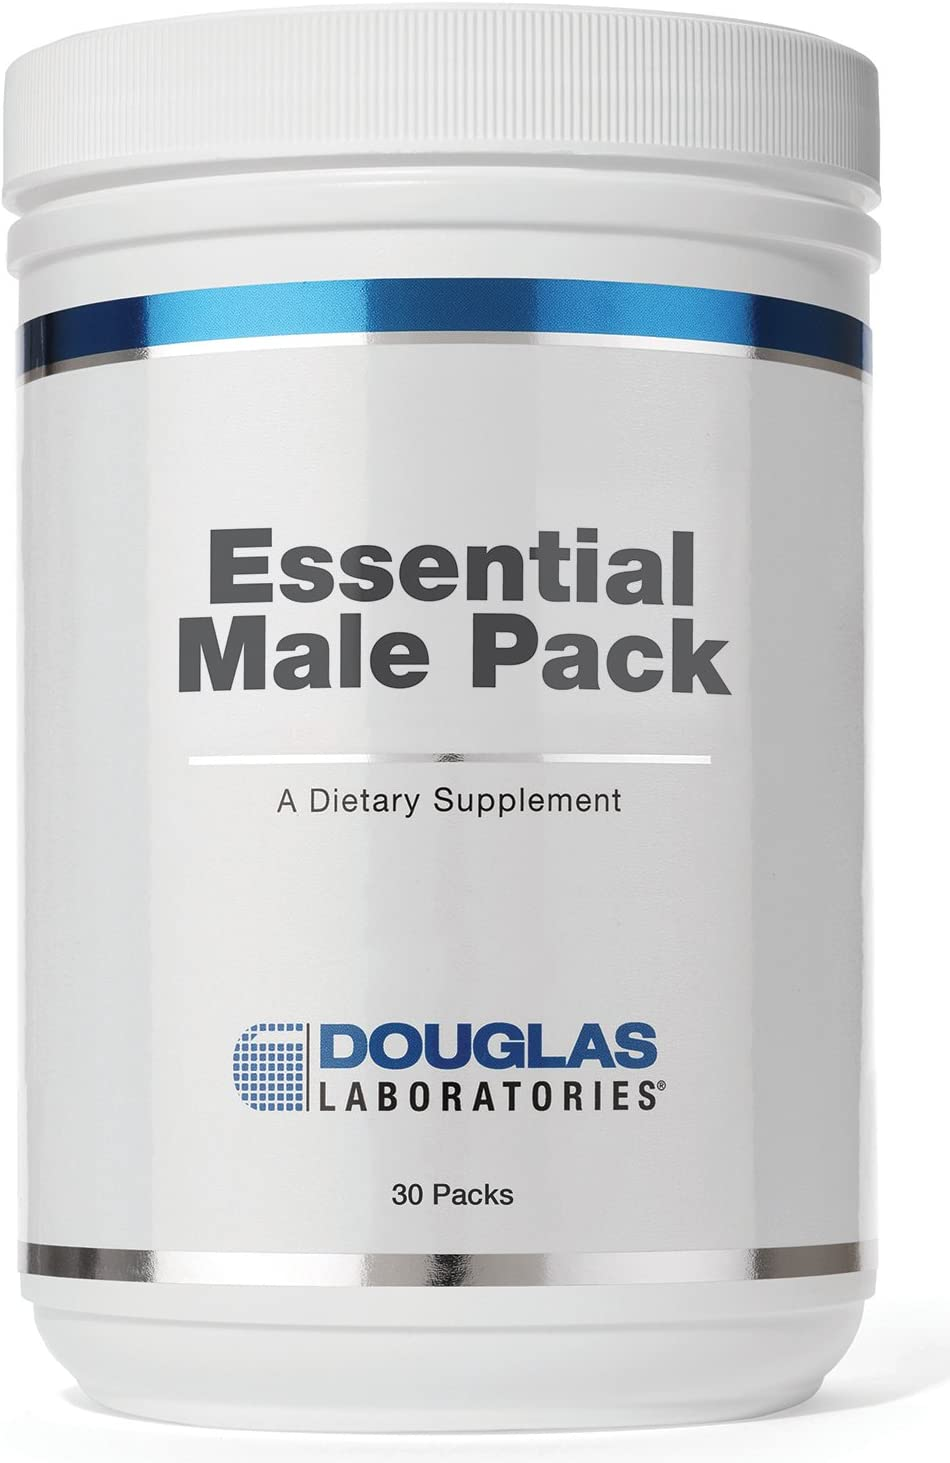 Douglas Laboratories – Essential Male Pack – Essential Nutrients for Male Health in One Daily Convenience Pack* – 30 Packets